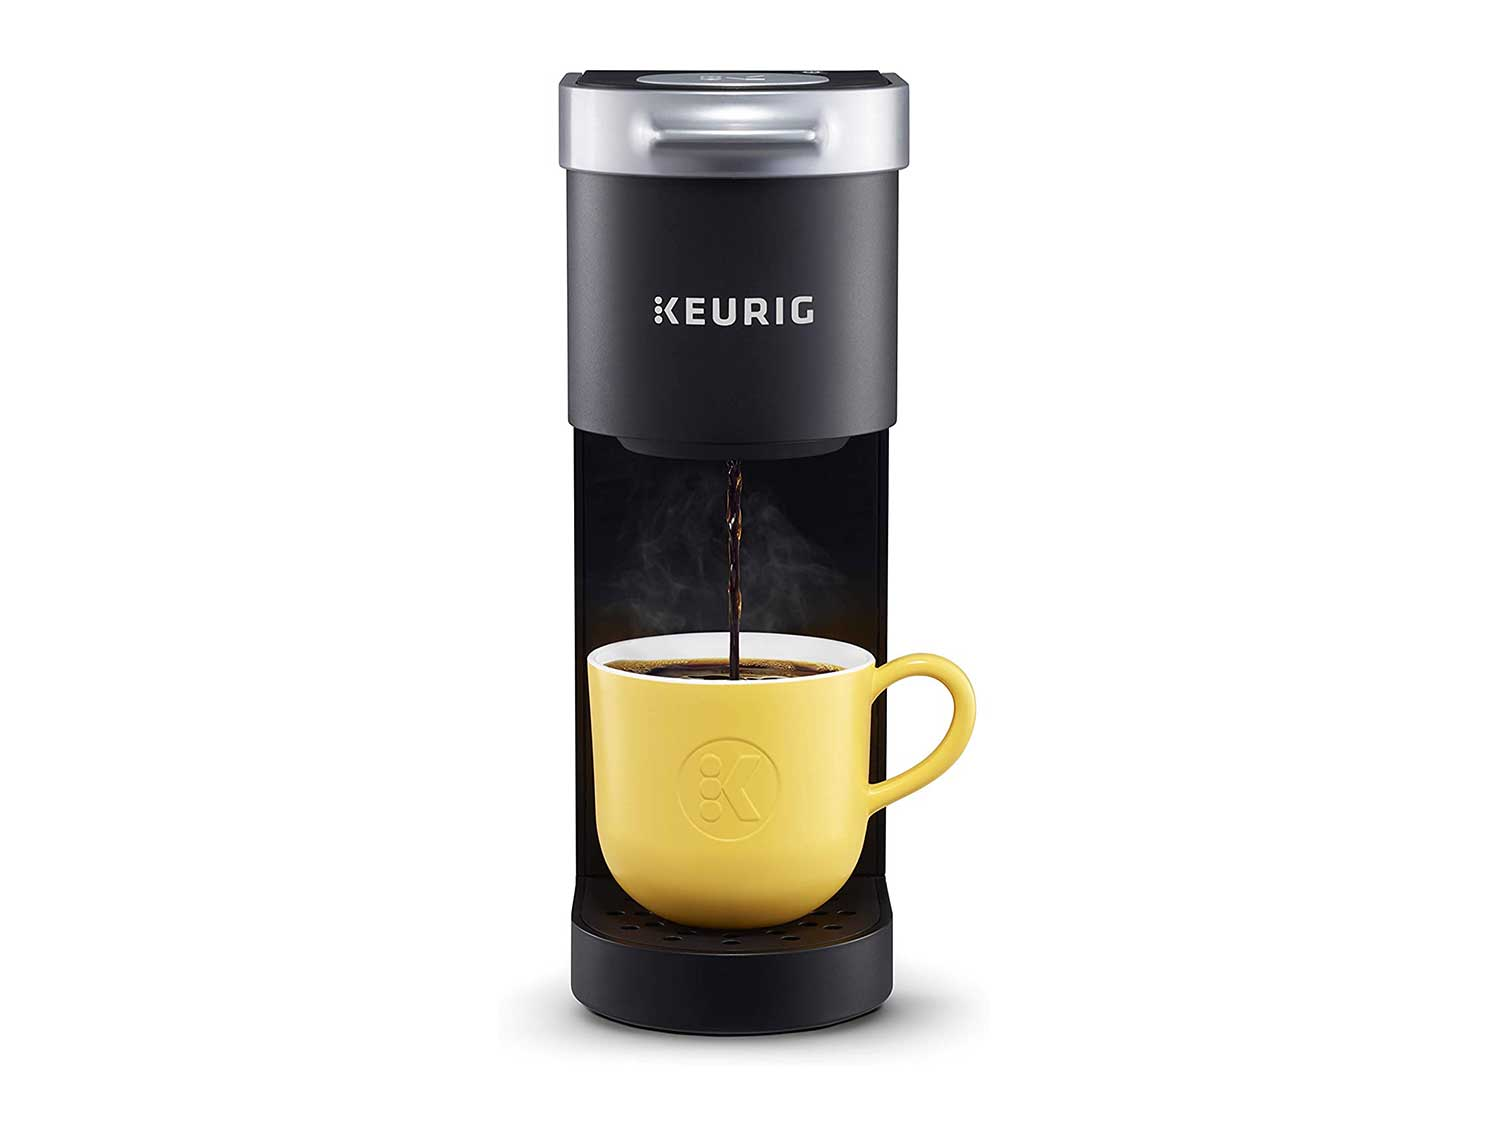 Keurig K-Mini Coffee Maker, Single Serve K-Cup Pod Coffee Brewer, 6 to 12 oz. Brew Sizes, Black